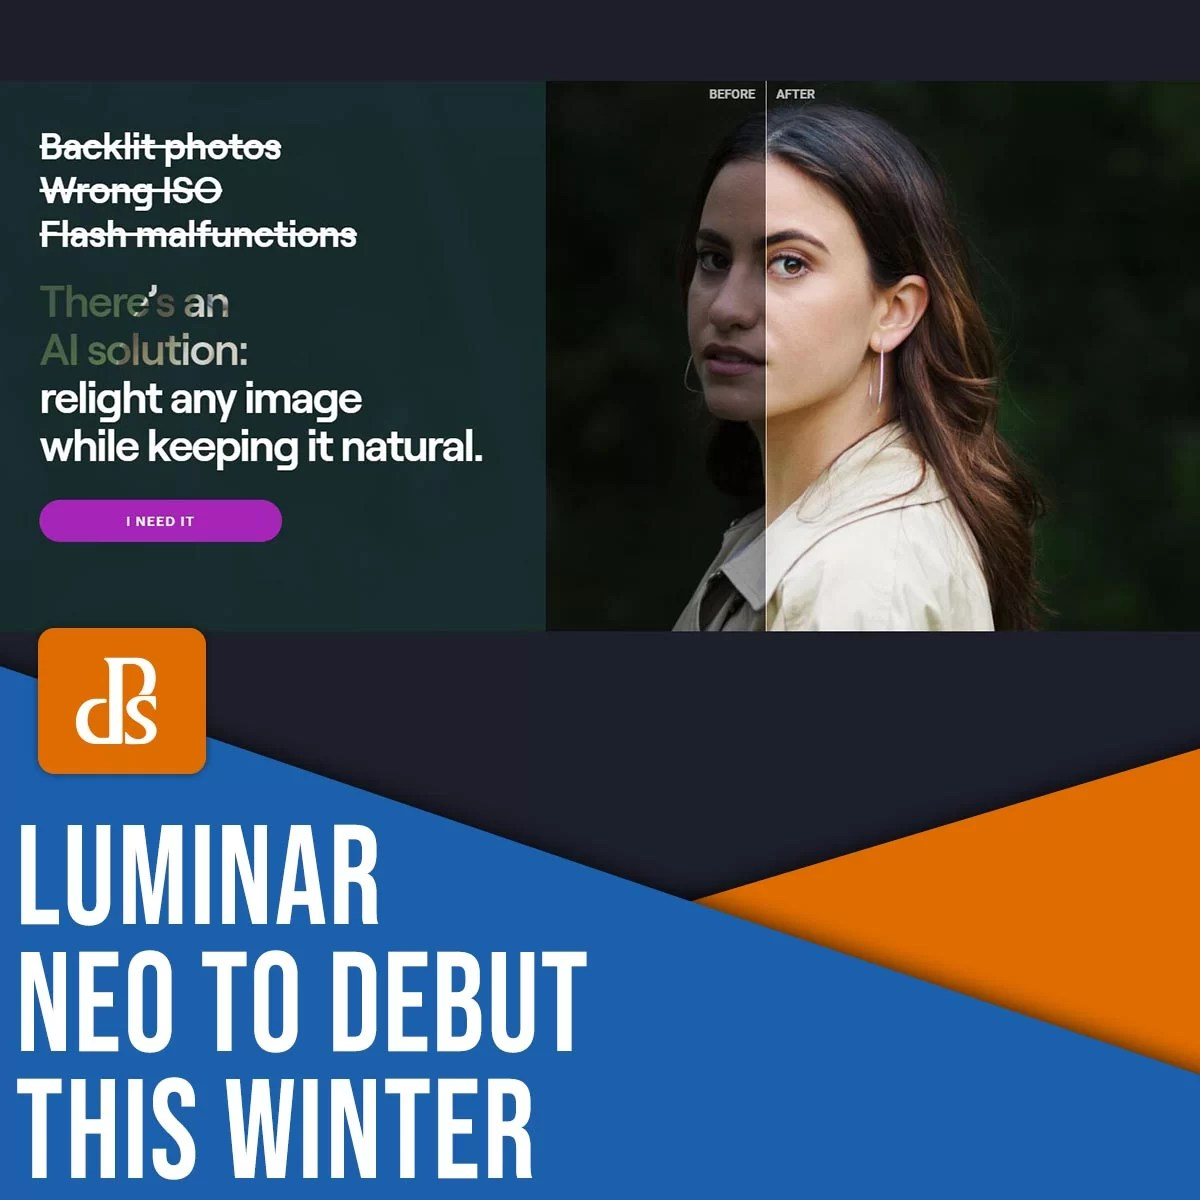 Luminar Neo to debut this winter